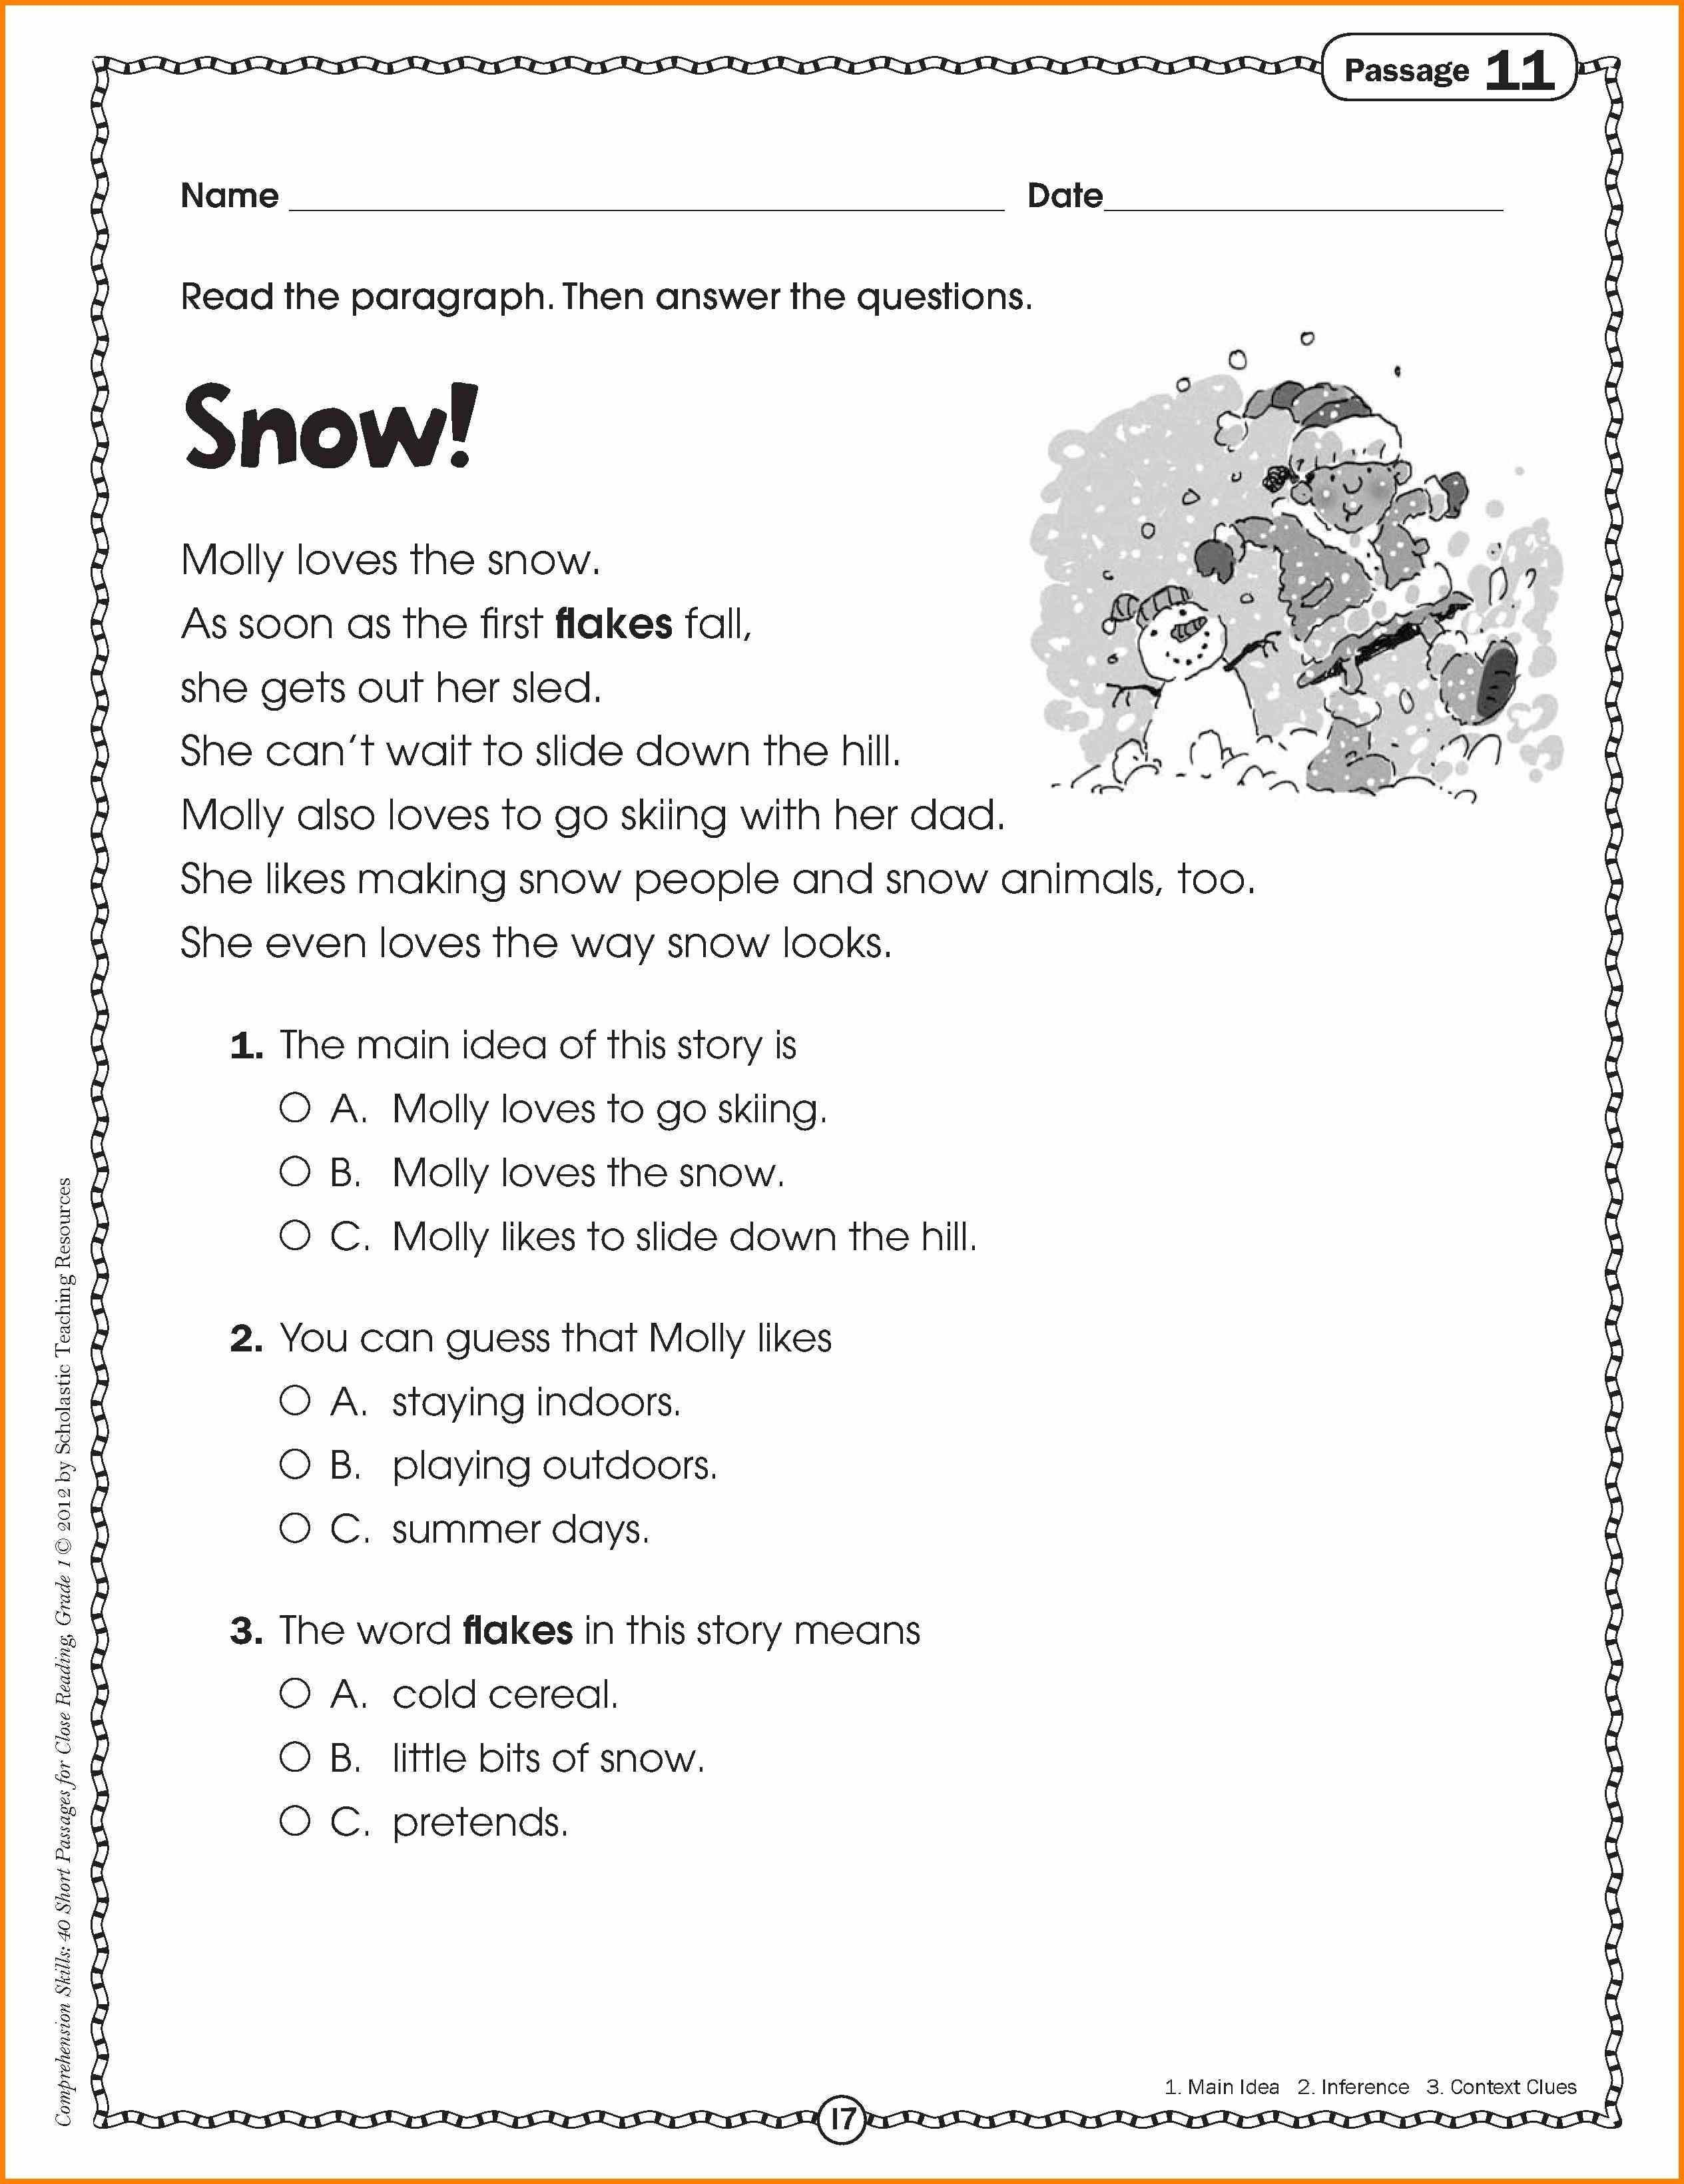 10 Famous Main Idea Passages For 2Nd Grade 9 reading passages for 2nd grade cath fordgroup 1 2020